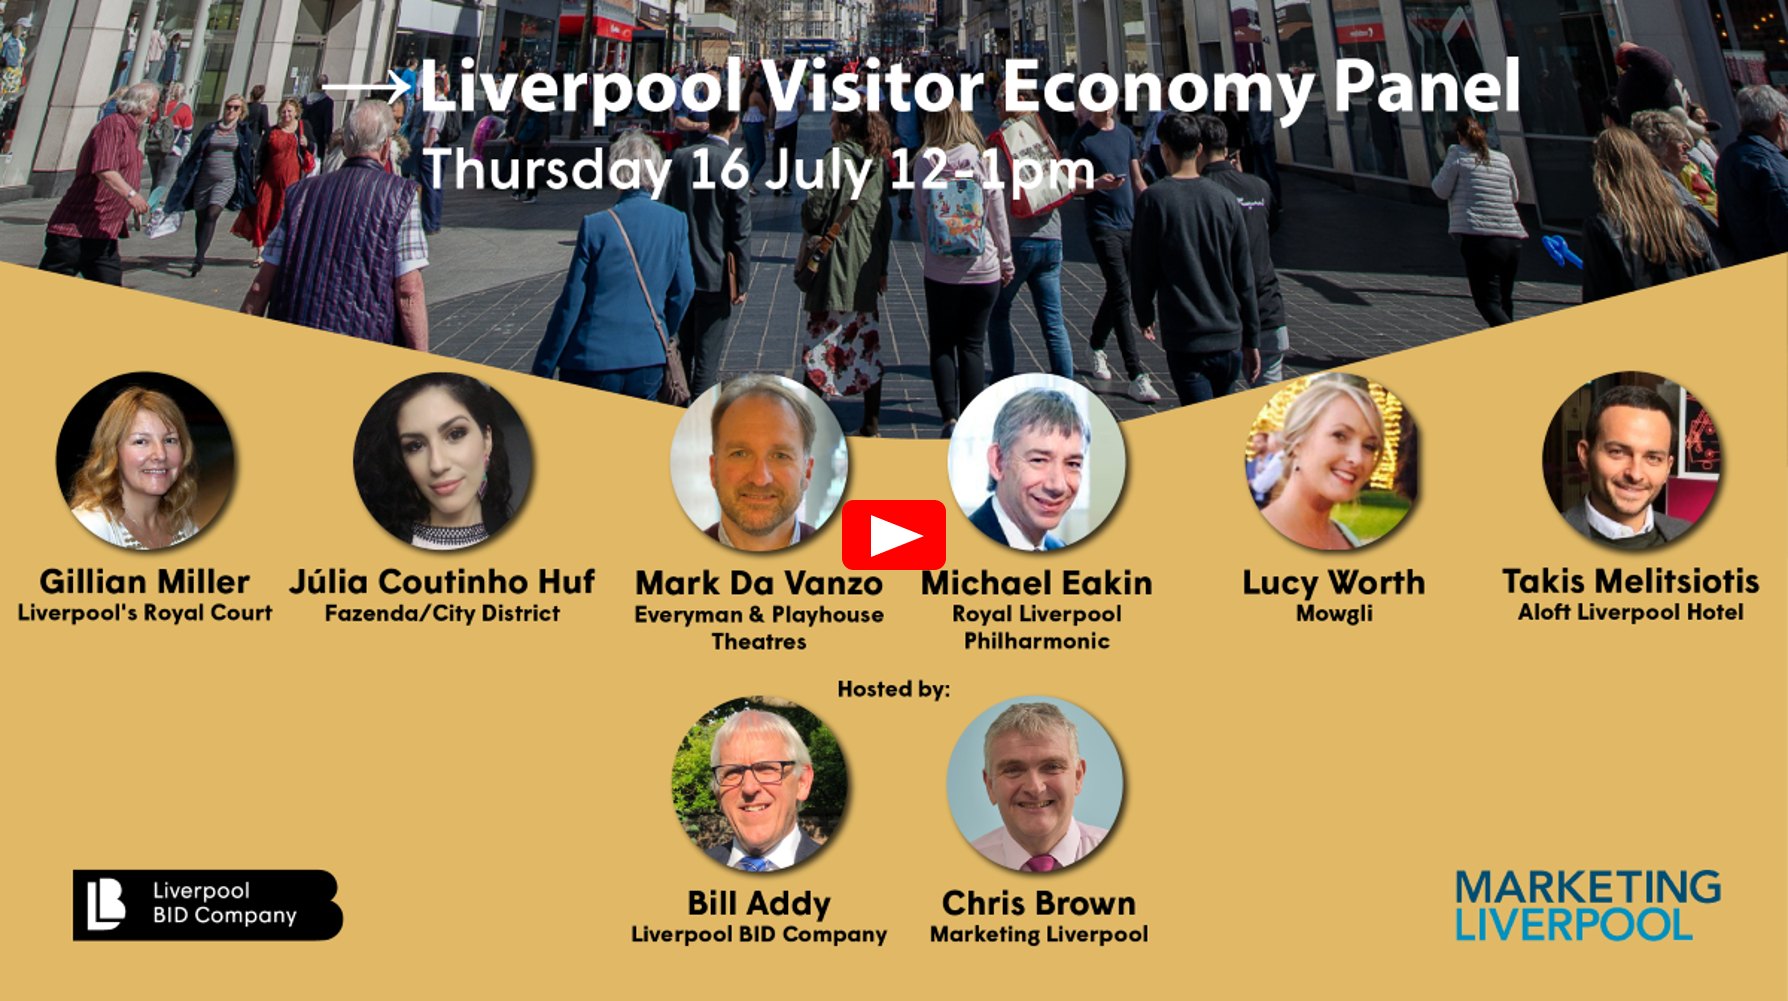 Watch the Liverpool Visitor Economy Panel video from 16 July